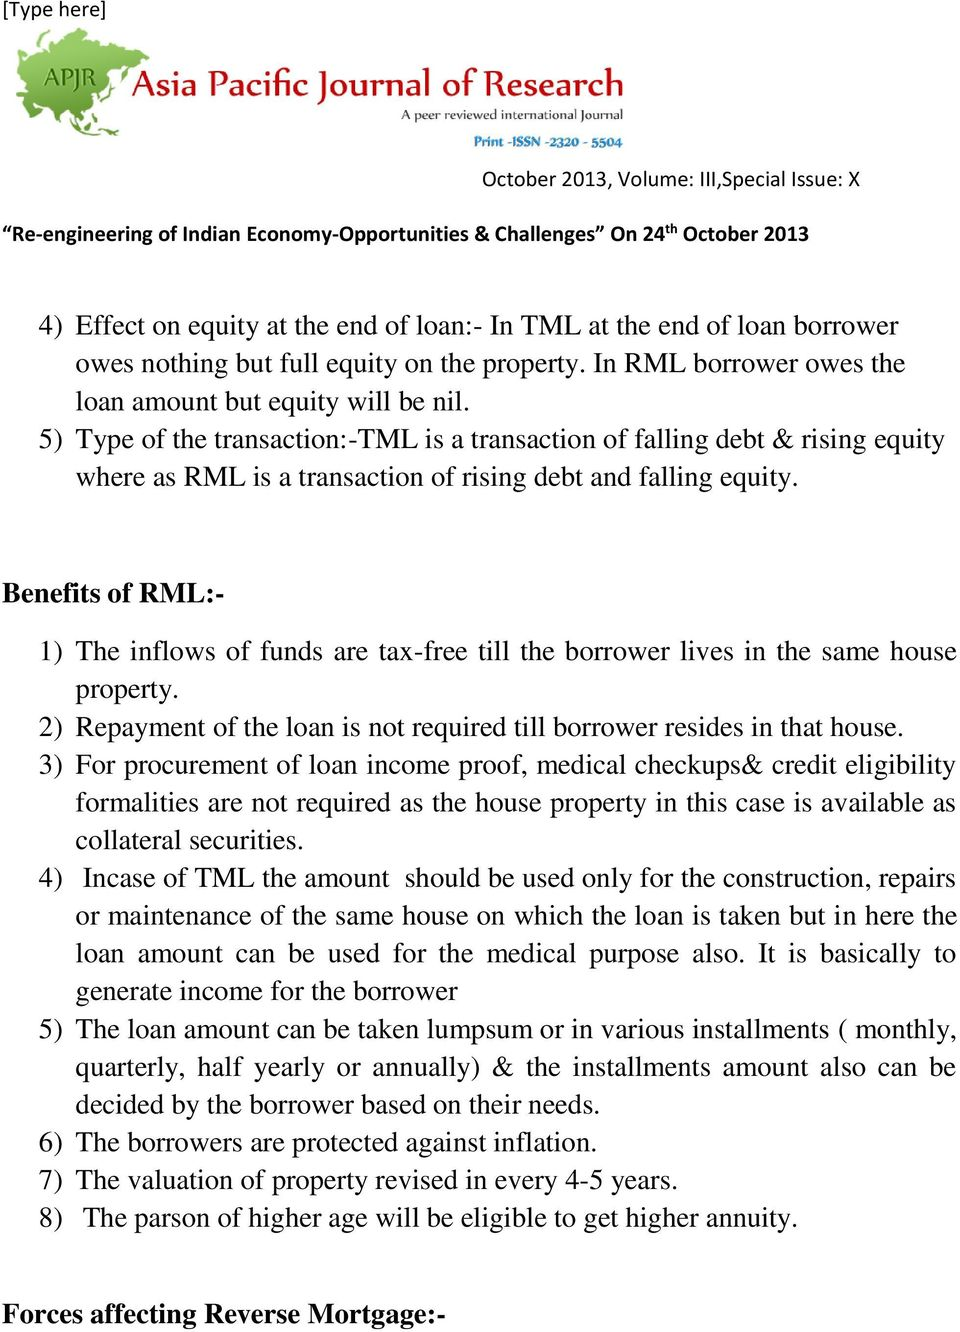 Benefits of RML:- 1) The inflows of funds are tax-free till the borrower lives in the same house property. 2) Repayment of the loan is not required till borrower resides in that house.